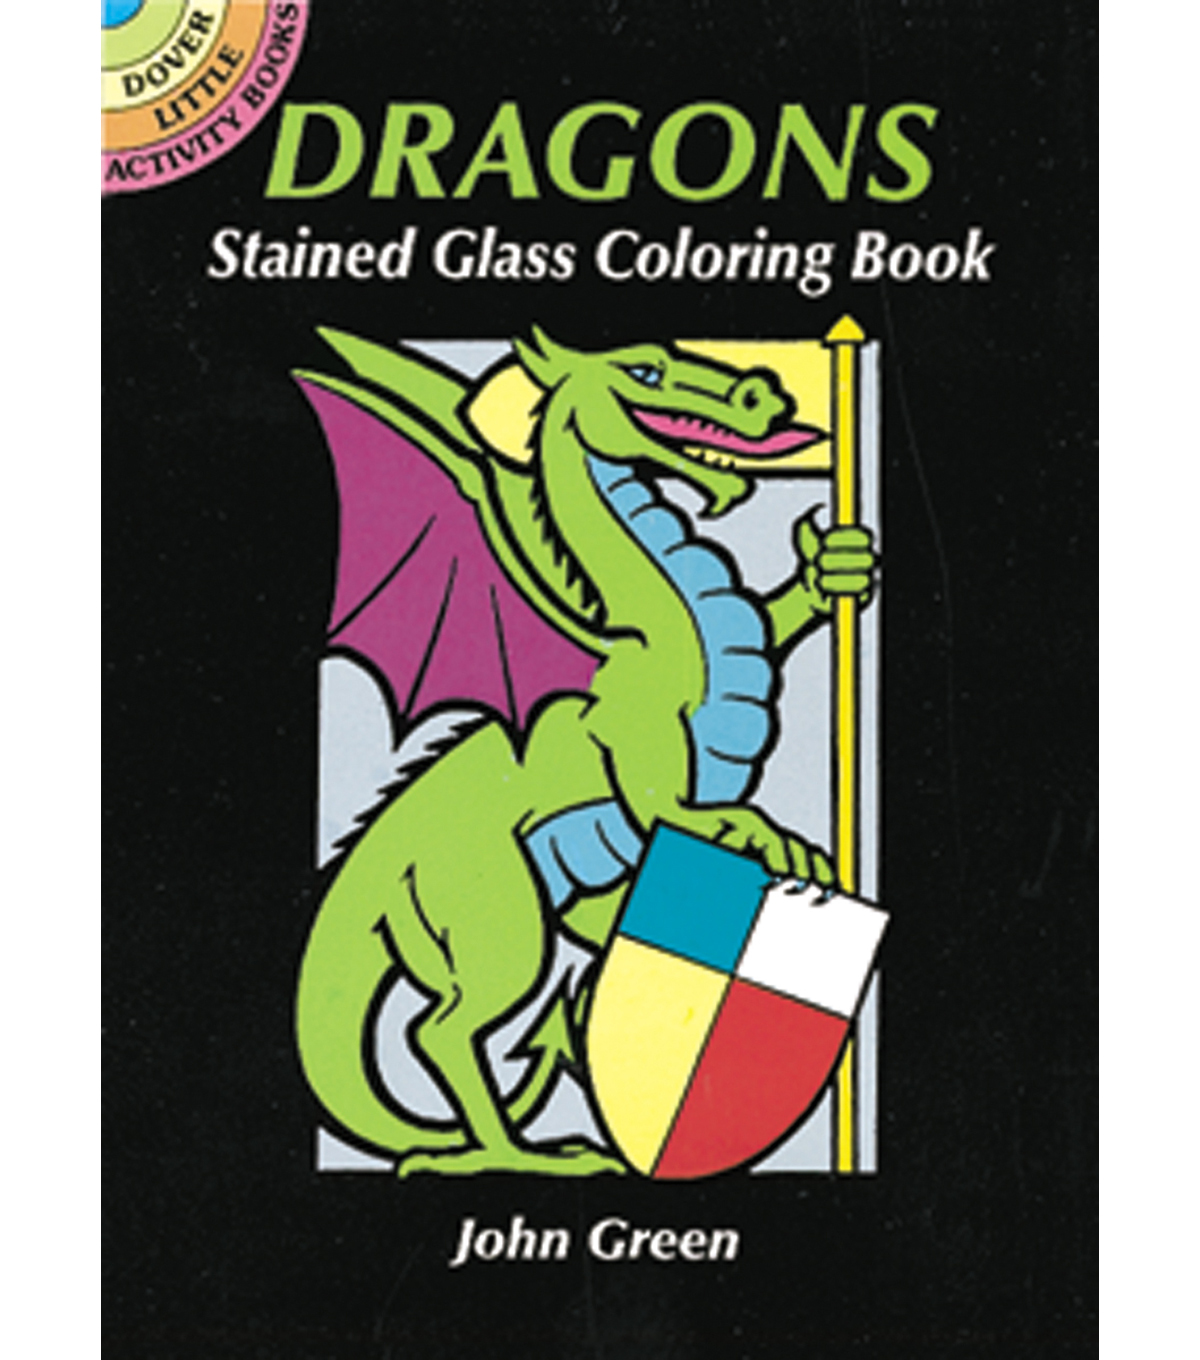 Dover Publications-Dragons Stained Glass Coloring Book | JOANN